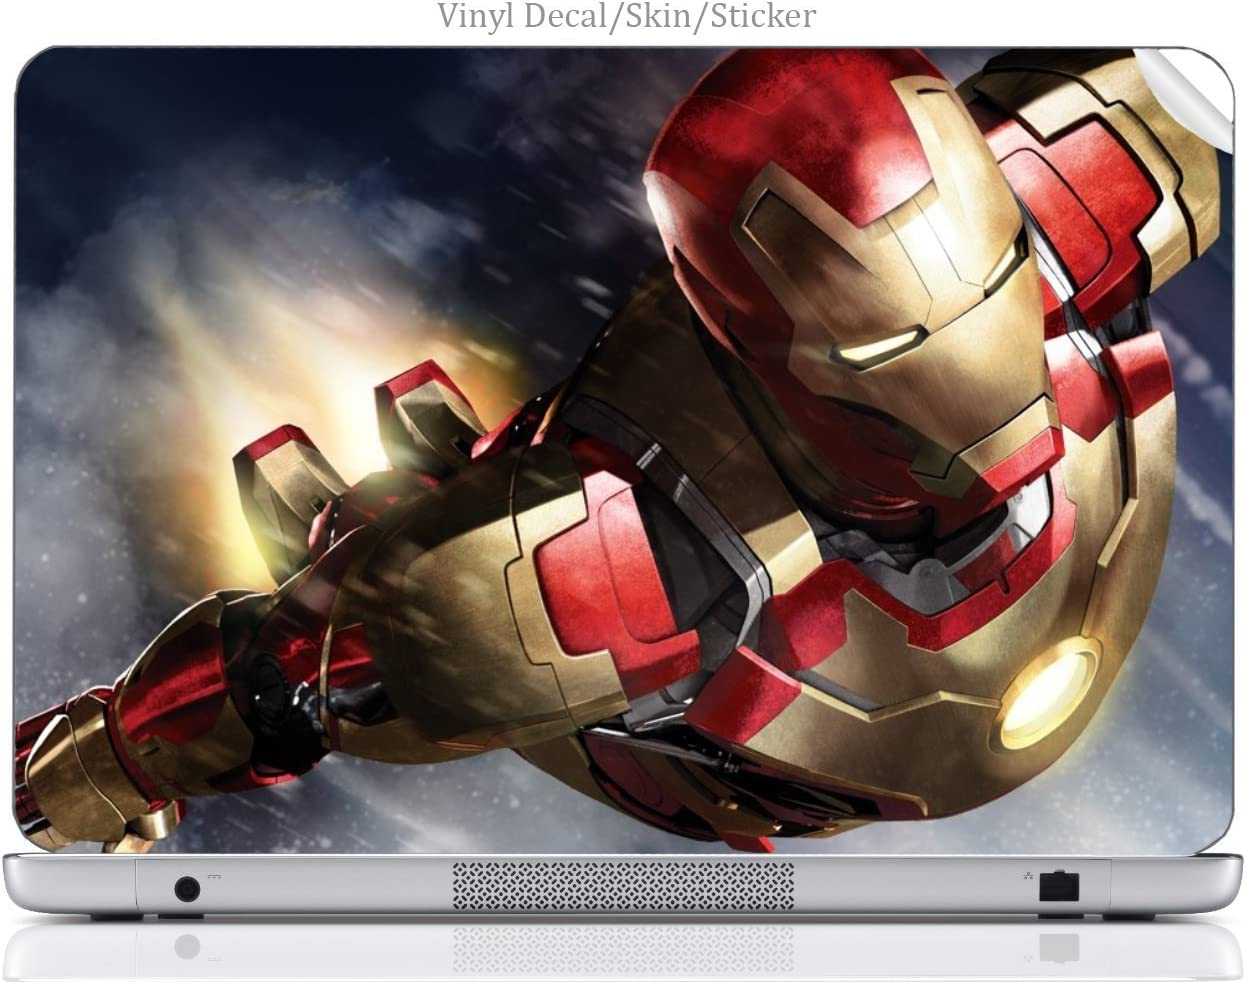 "Laptop VINYL DECAL Sticker Skin Print Comic Book Hero fits 15.6"" HP Pavilion (15-d038dx)"